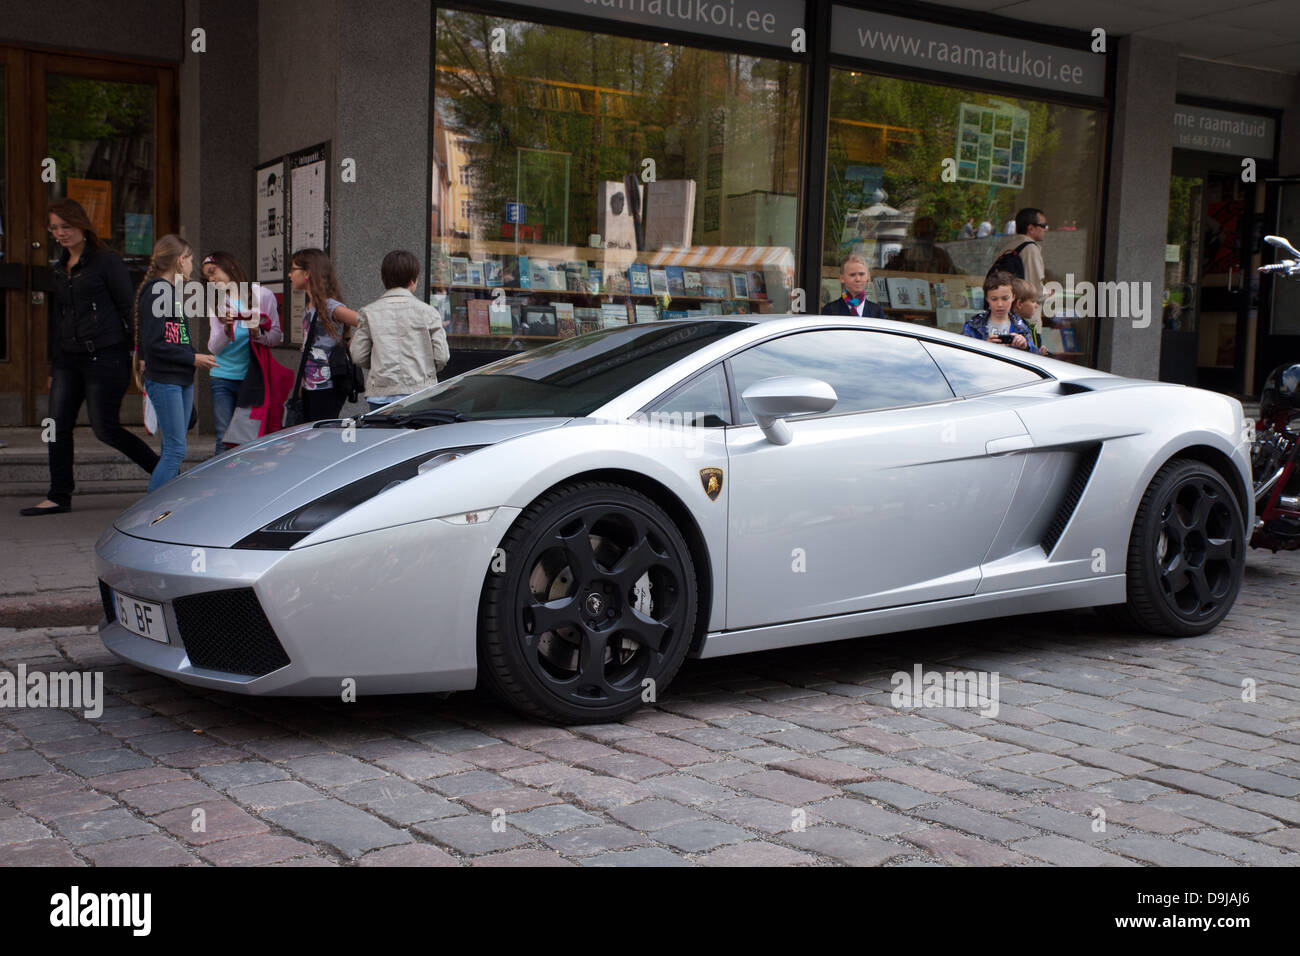 Lamborghini Gallardo Sports Car Silver Colour Side View Stock